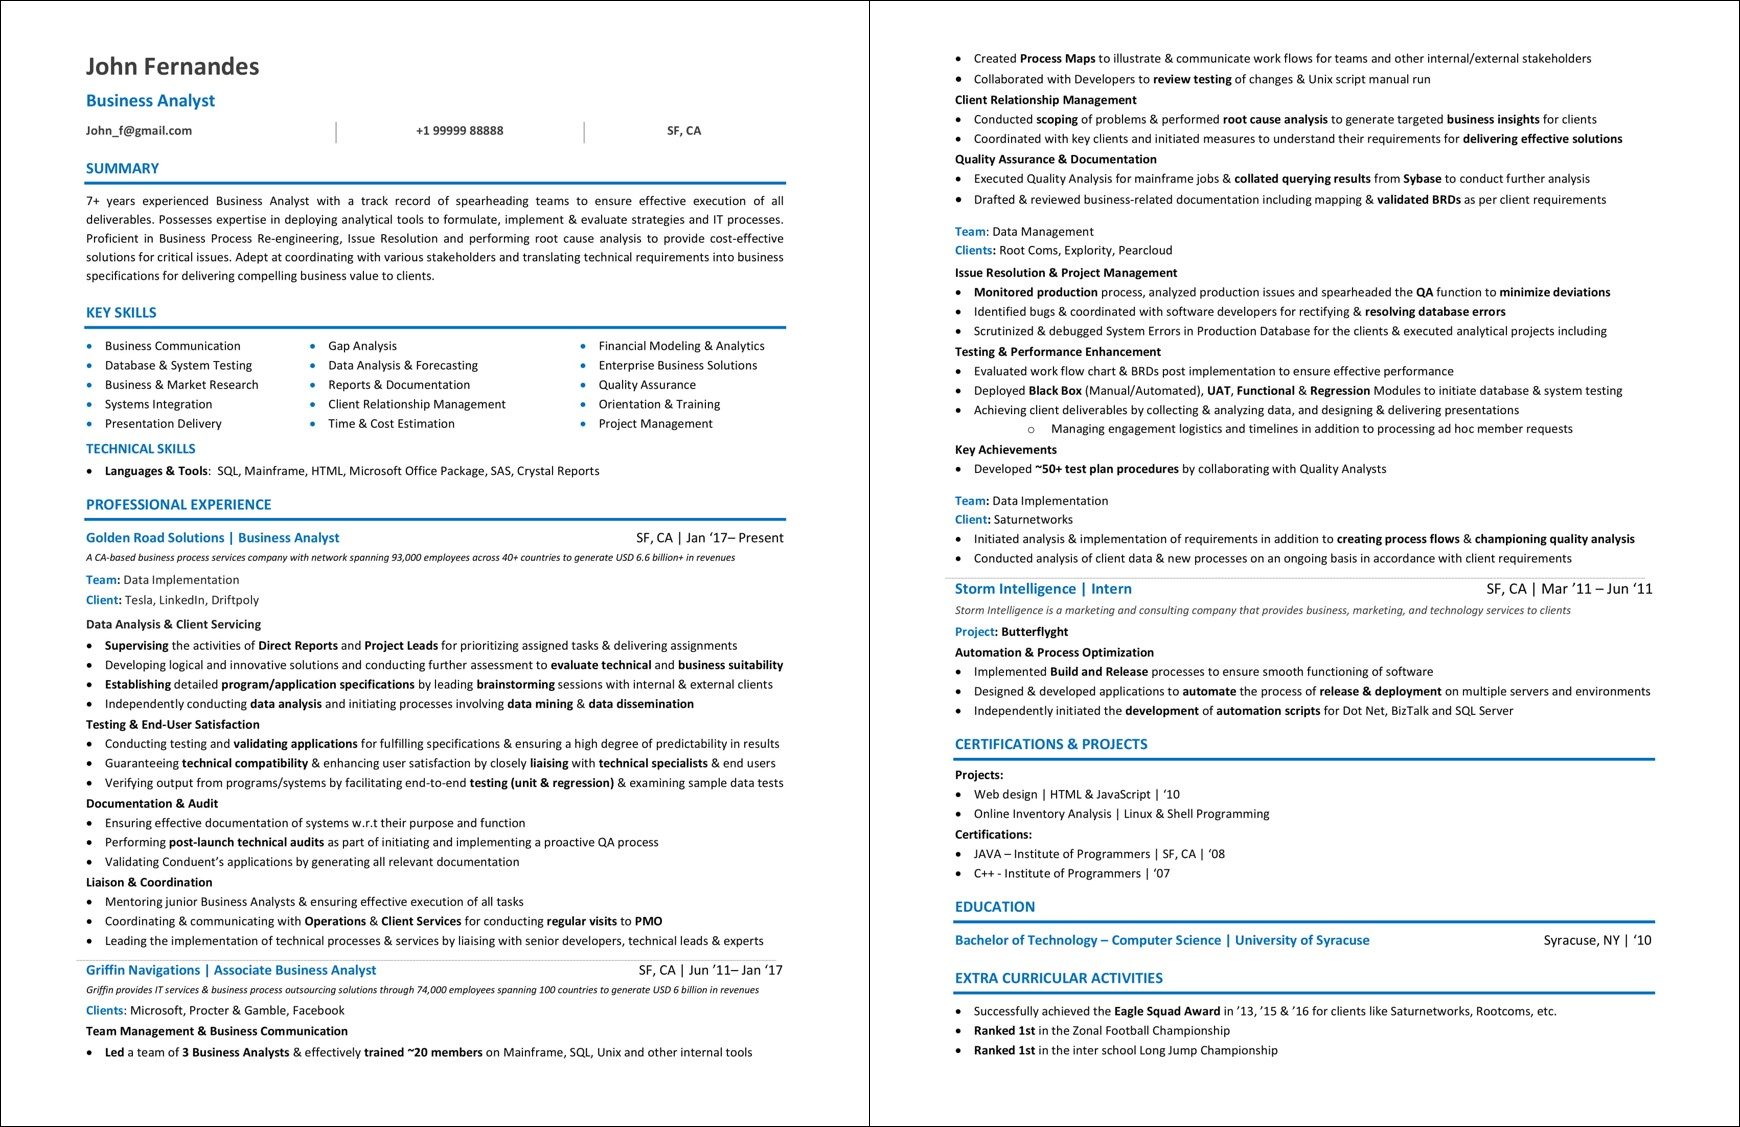 Business Analyst Resume: Examples & 2018 Guide [+ Best Samples]